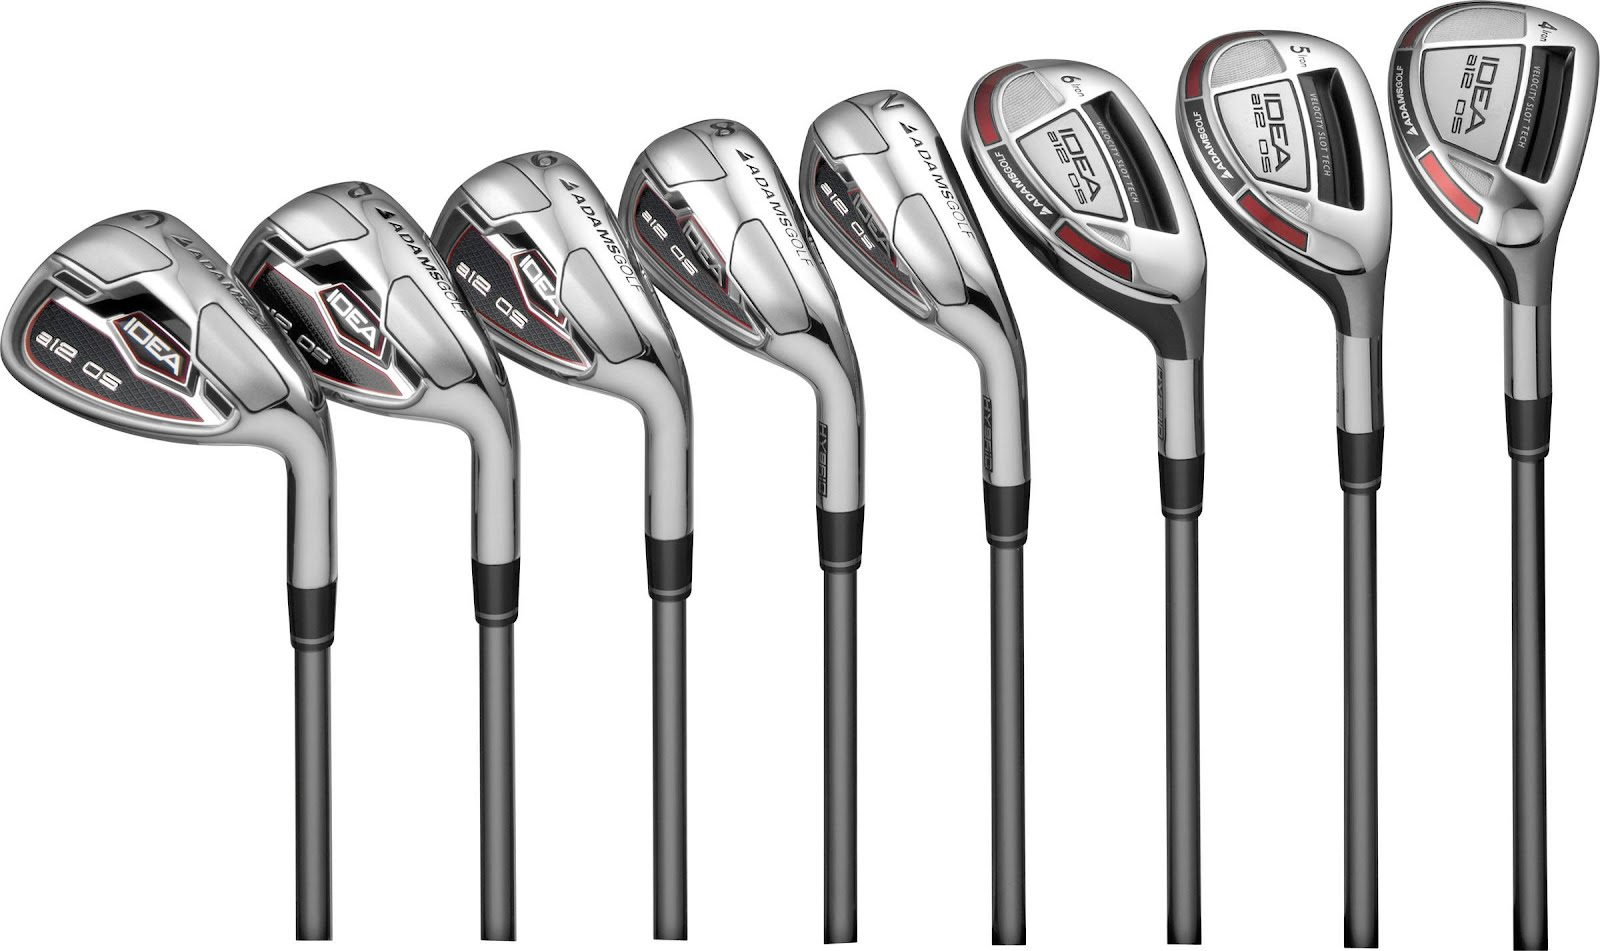 TRANSITION IRONS - ABOUT HANDICAPS AND TRANSPORTABLE HANDICAP SYSTEM